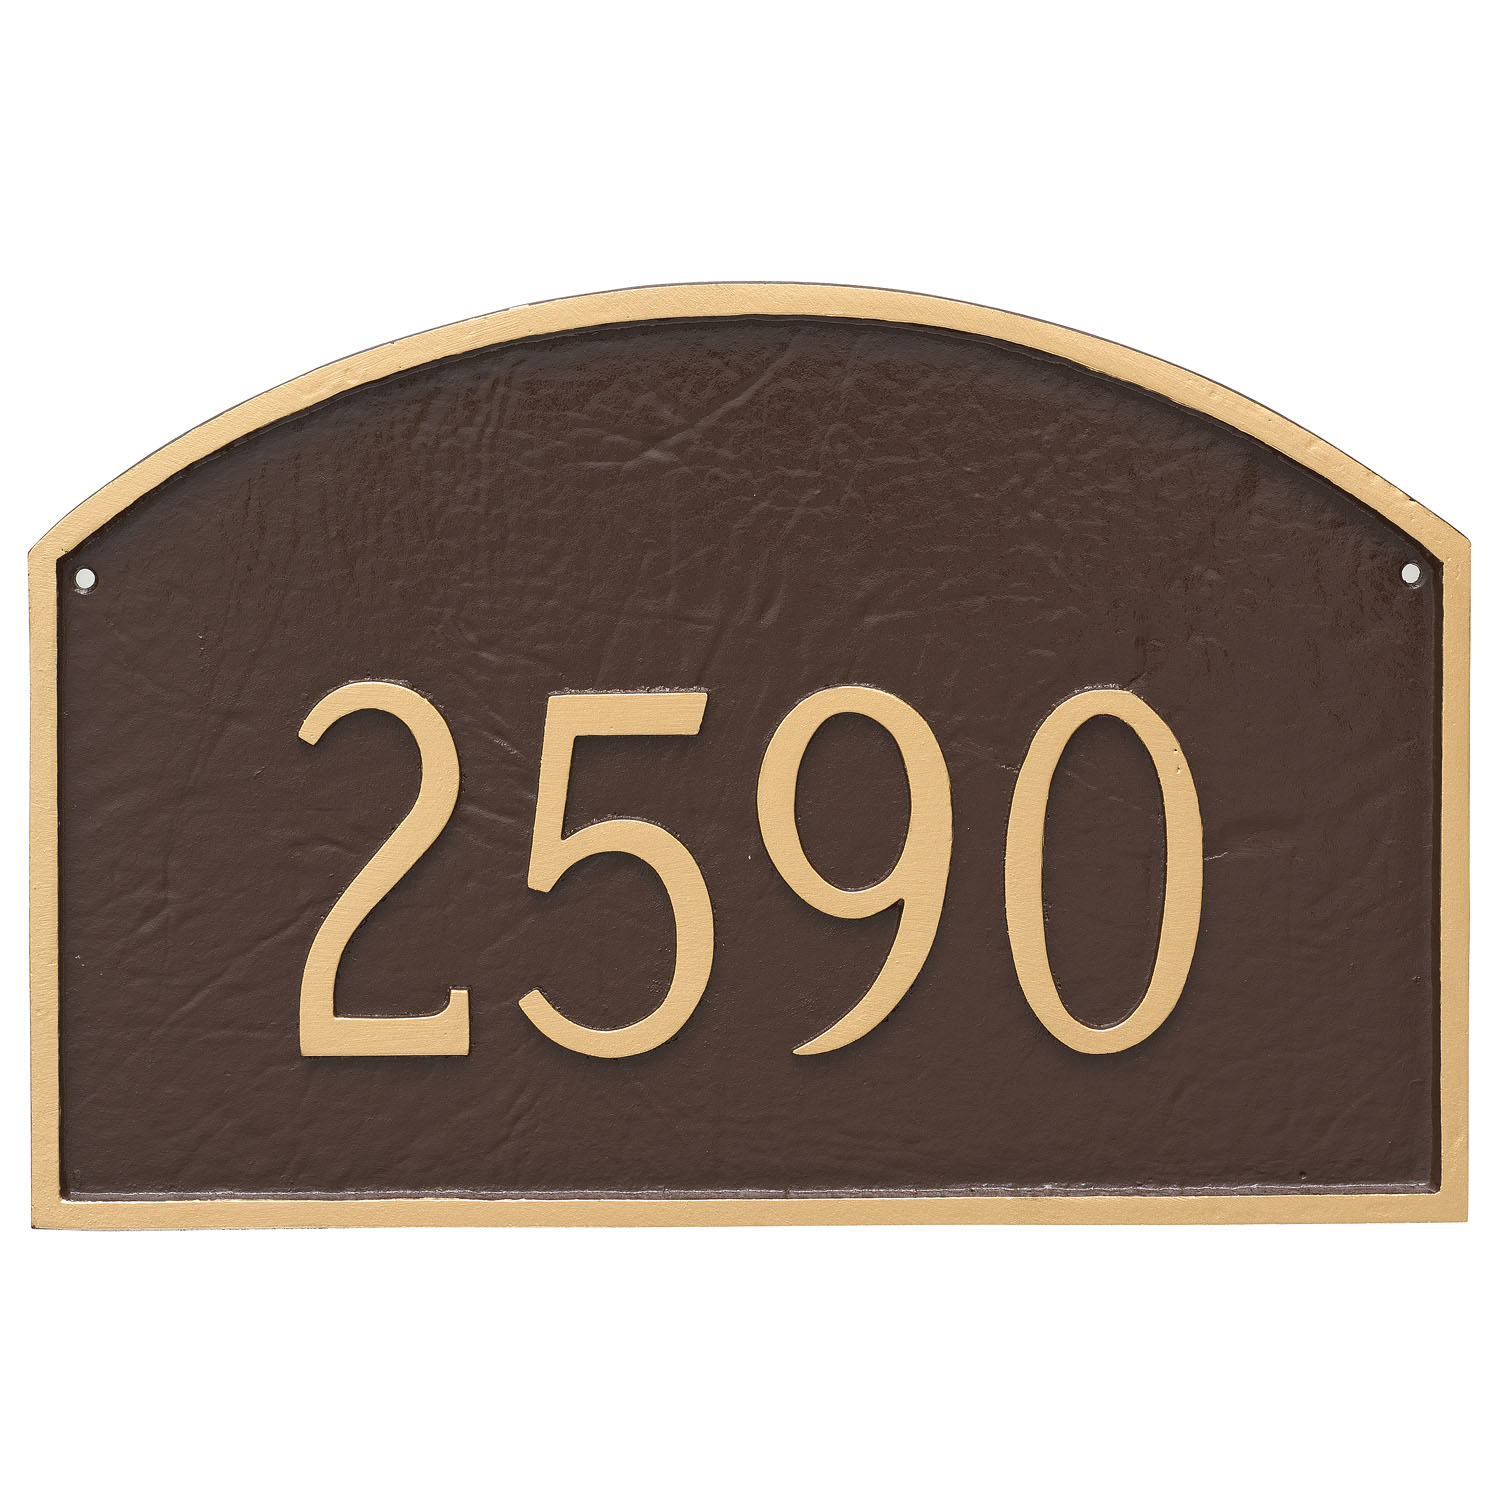 Prestige Arch Large One Line Address Sign Plaque The Address Number Store